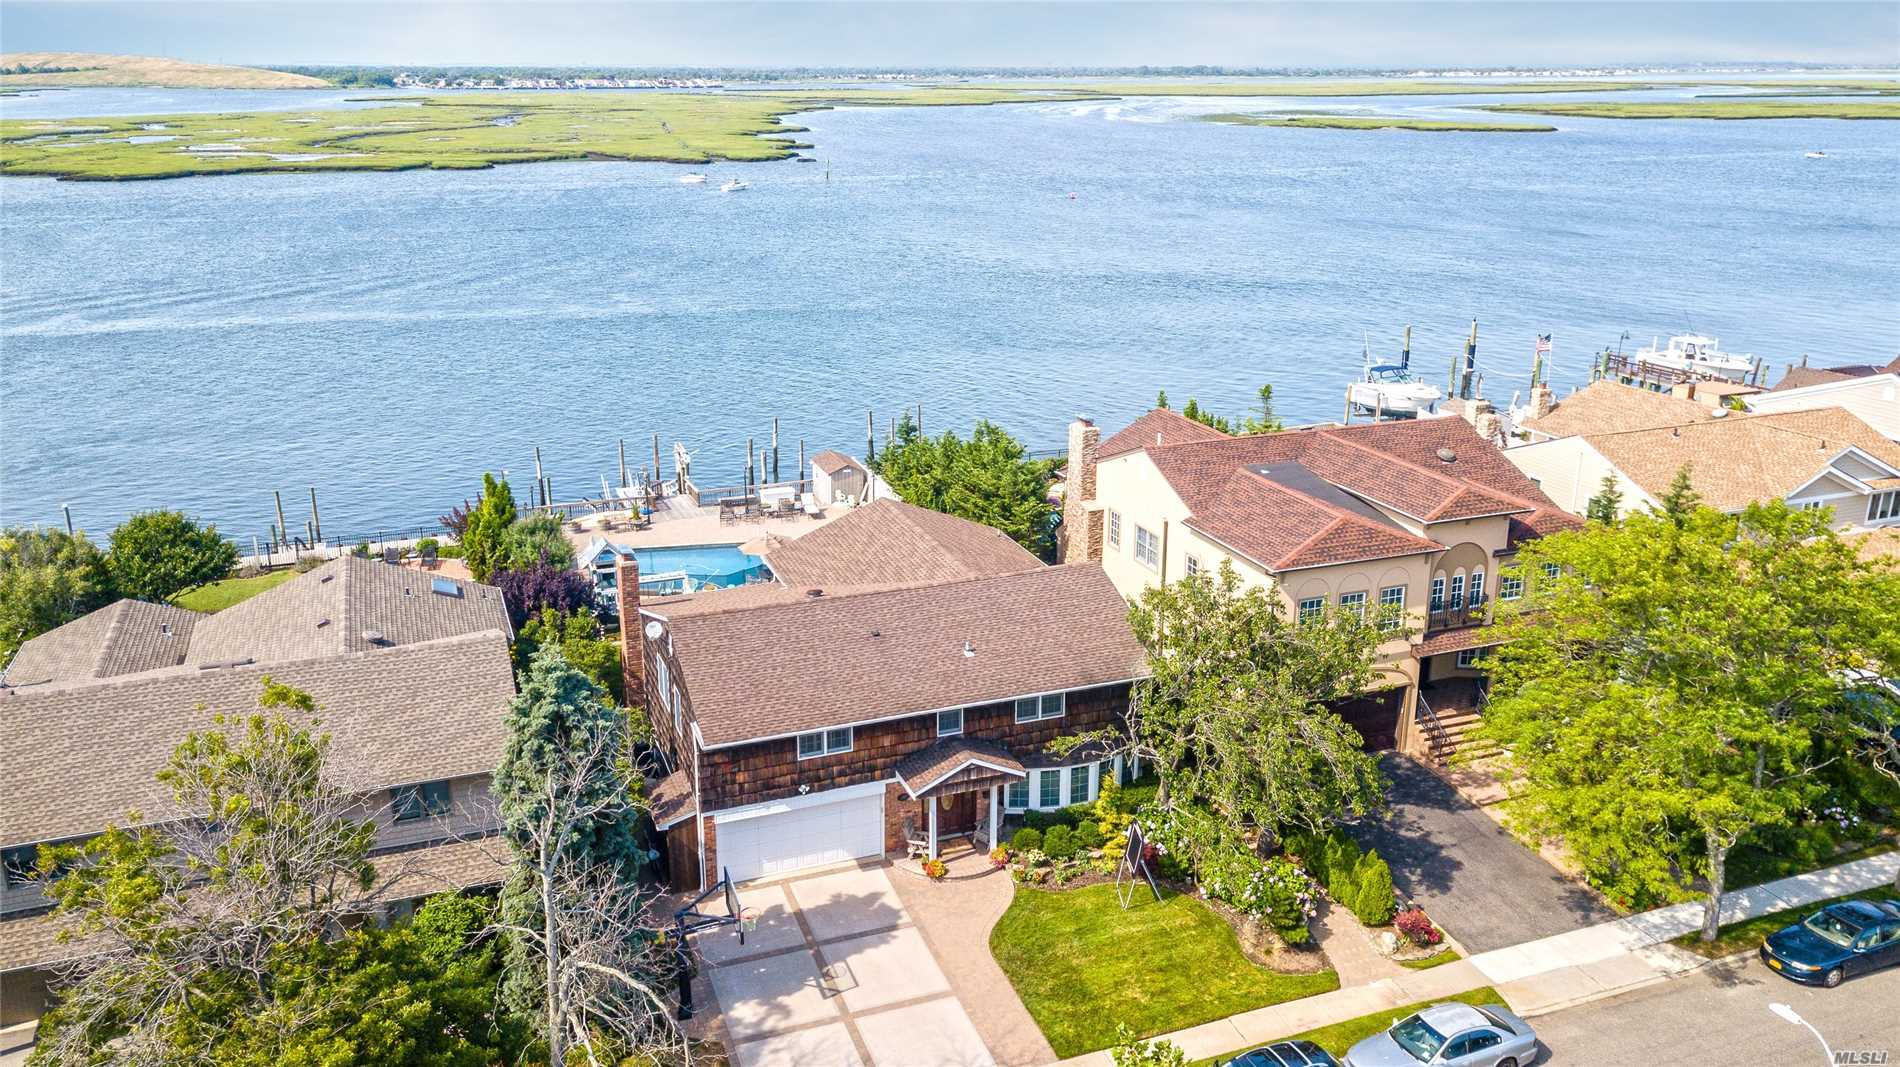 293 Harbor Dr - Lido Beach, New York